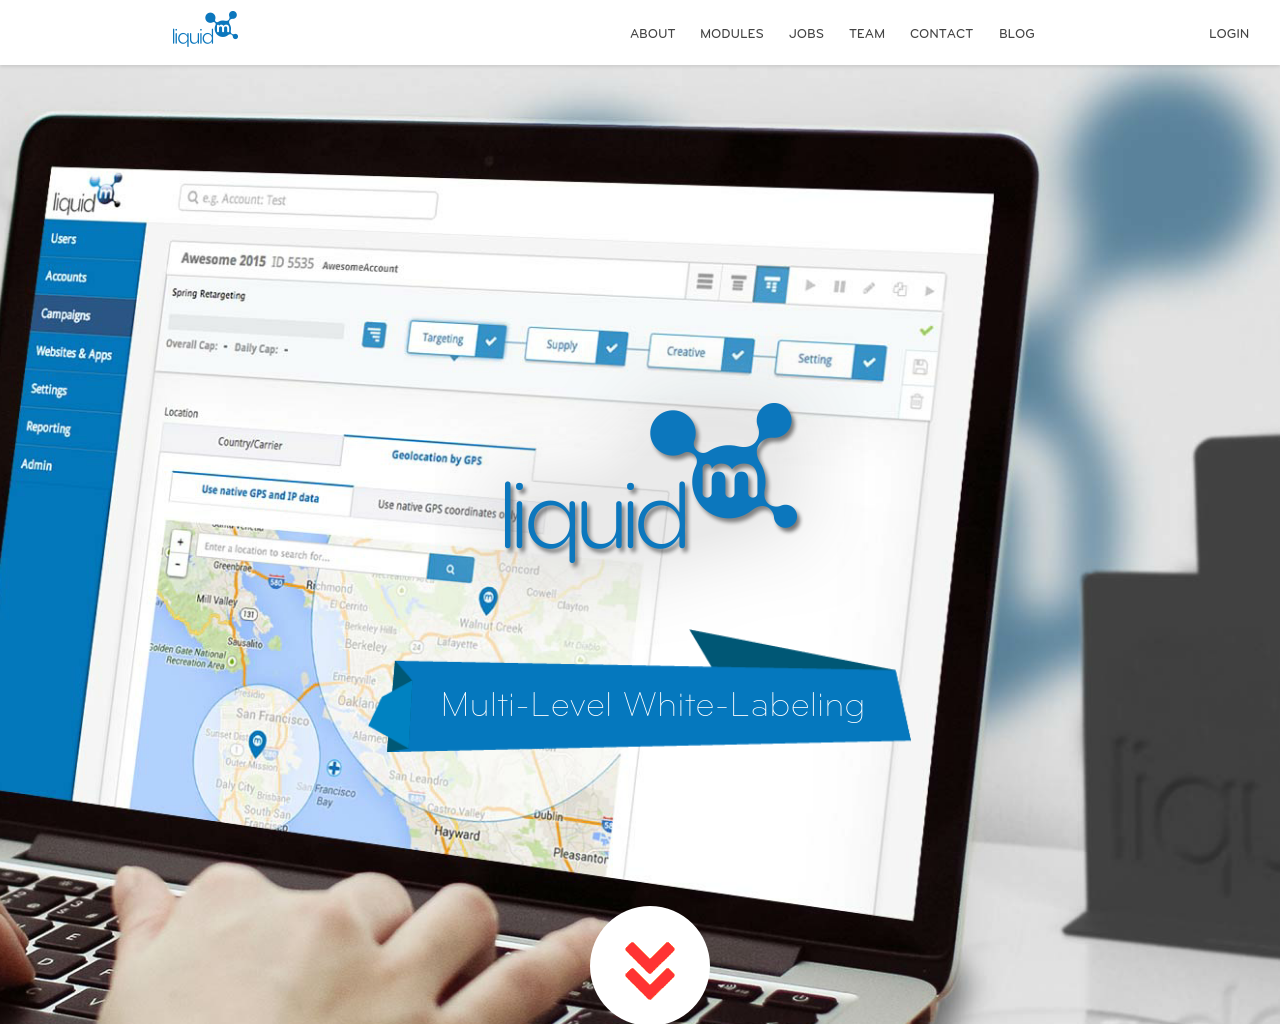 LiquidM-Advertising-Reviews-Pricing